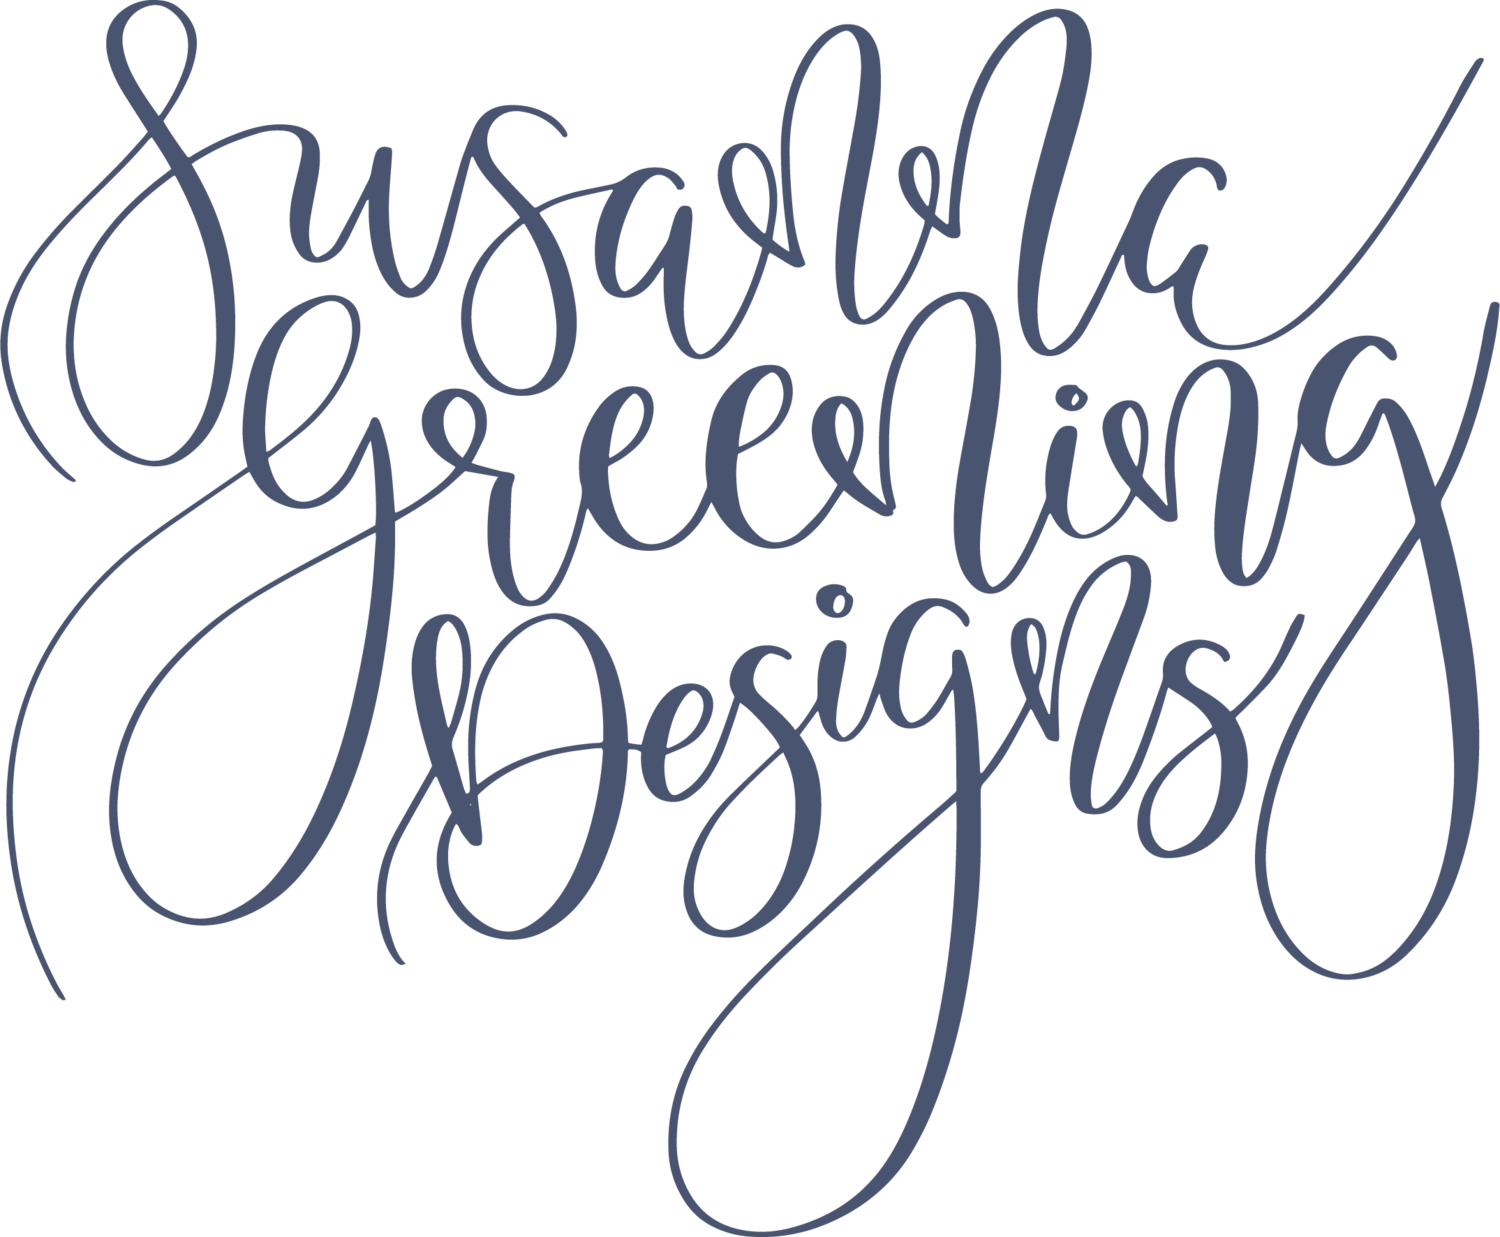 Susanna Greening Designs | Made to Measure Bridal Wear | Bespoke Wedding Dresses | Matlock Derbyshire